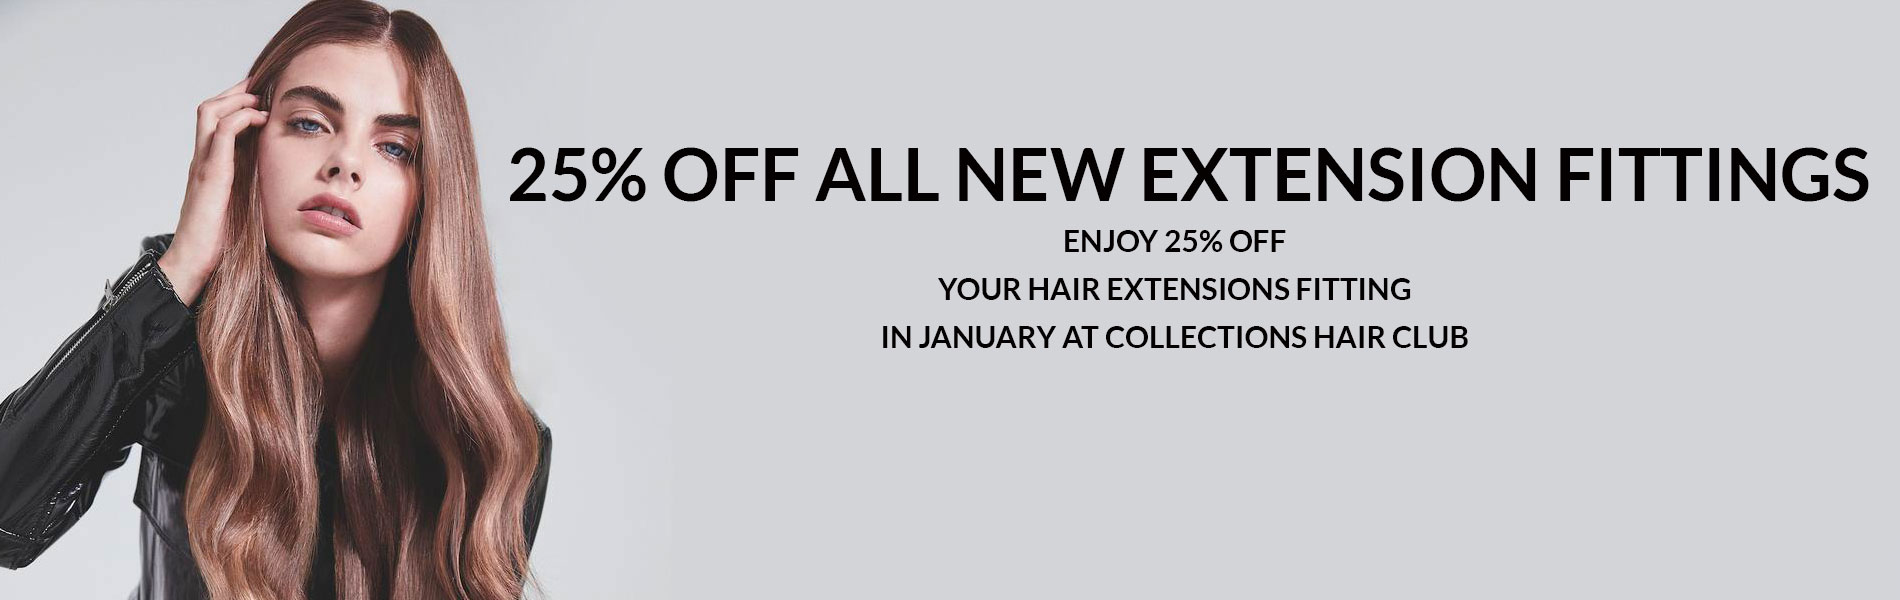 25 off all new extension fittings banner 2